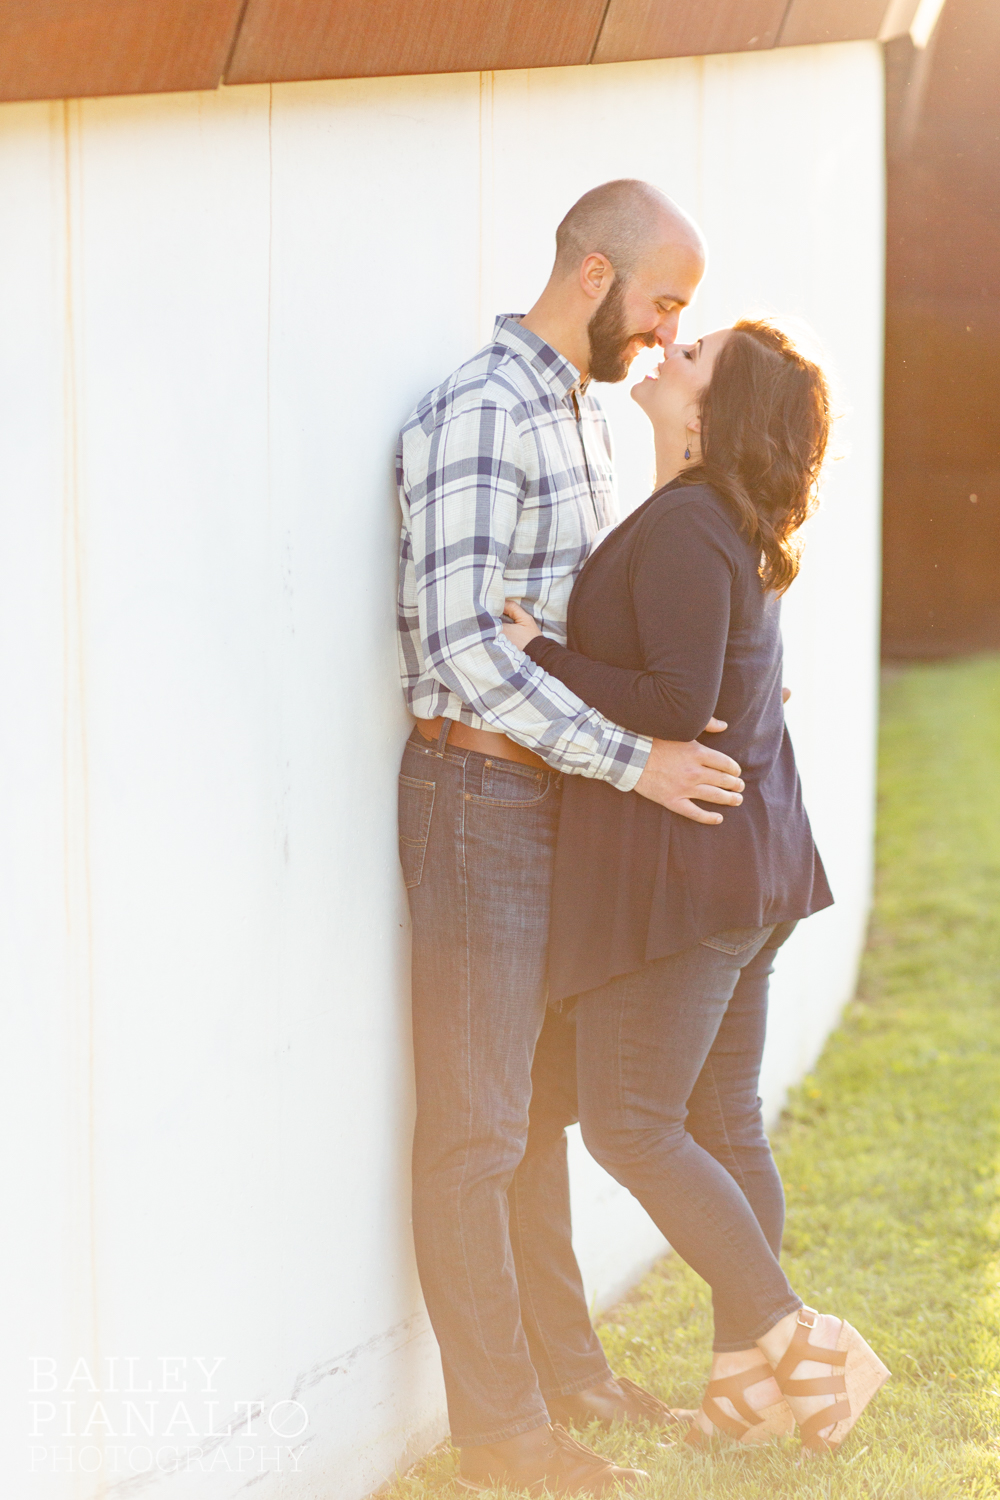 Navy & Cream Casual Spring Downtown Engagement Session Inspiration | Kansas City, MO